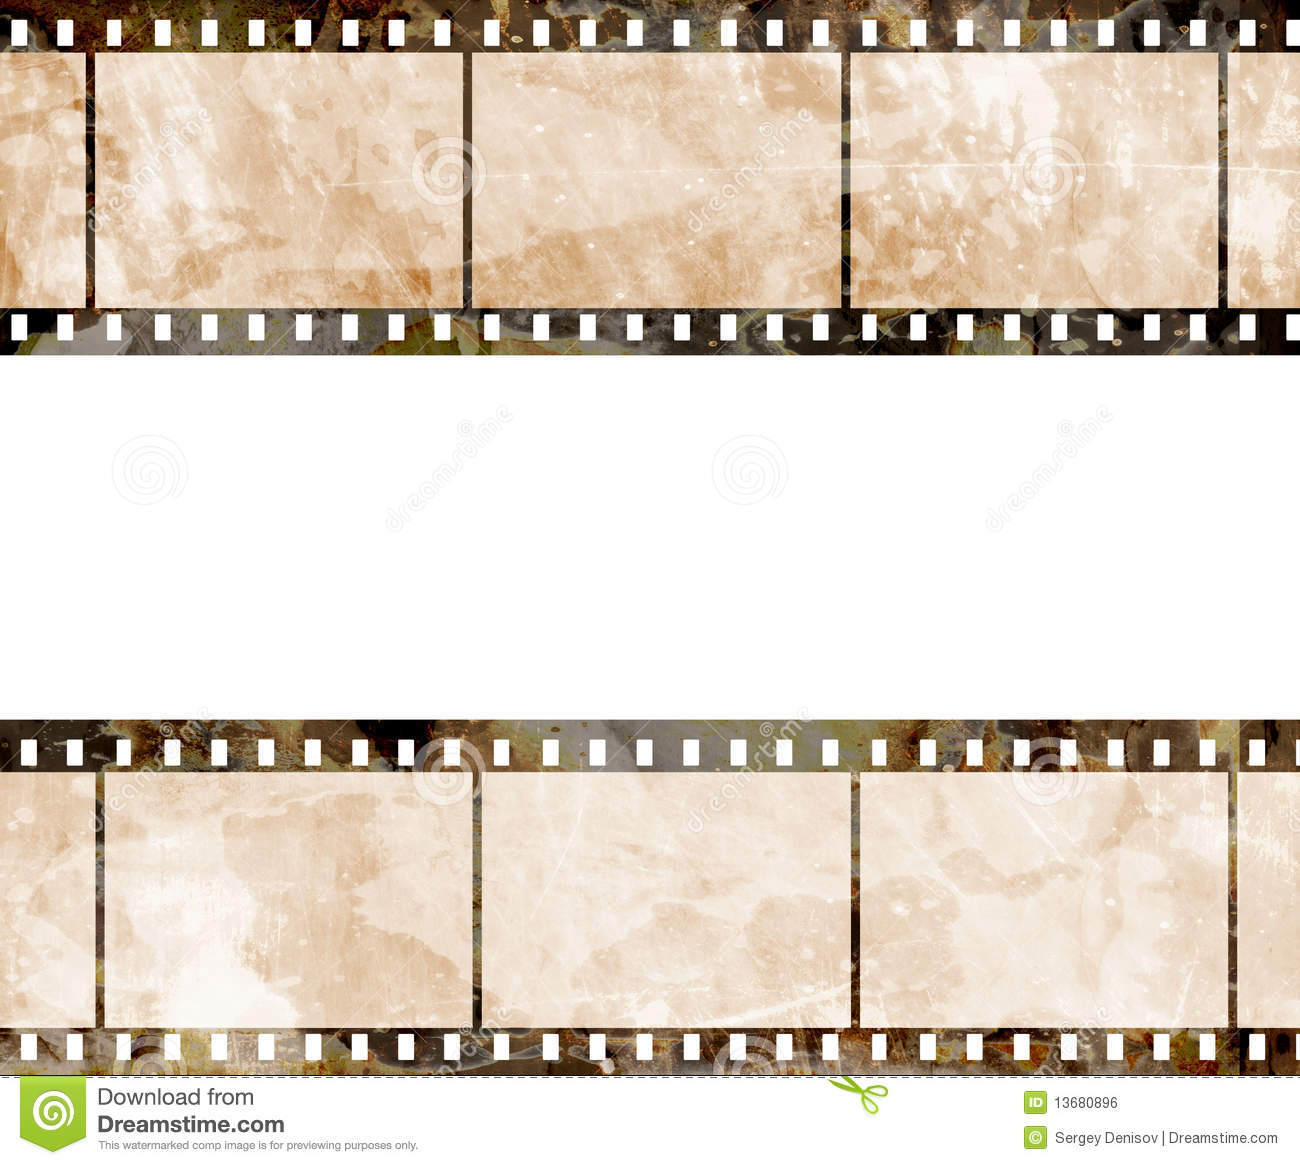 Old Film Strip Royalty Free Stock Image - Image: 13680896